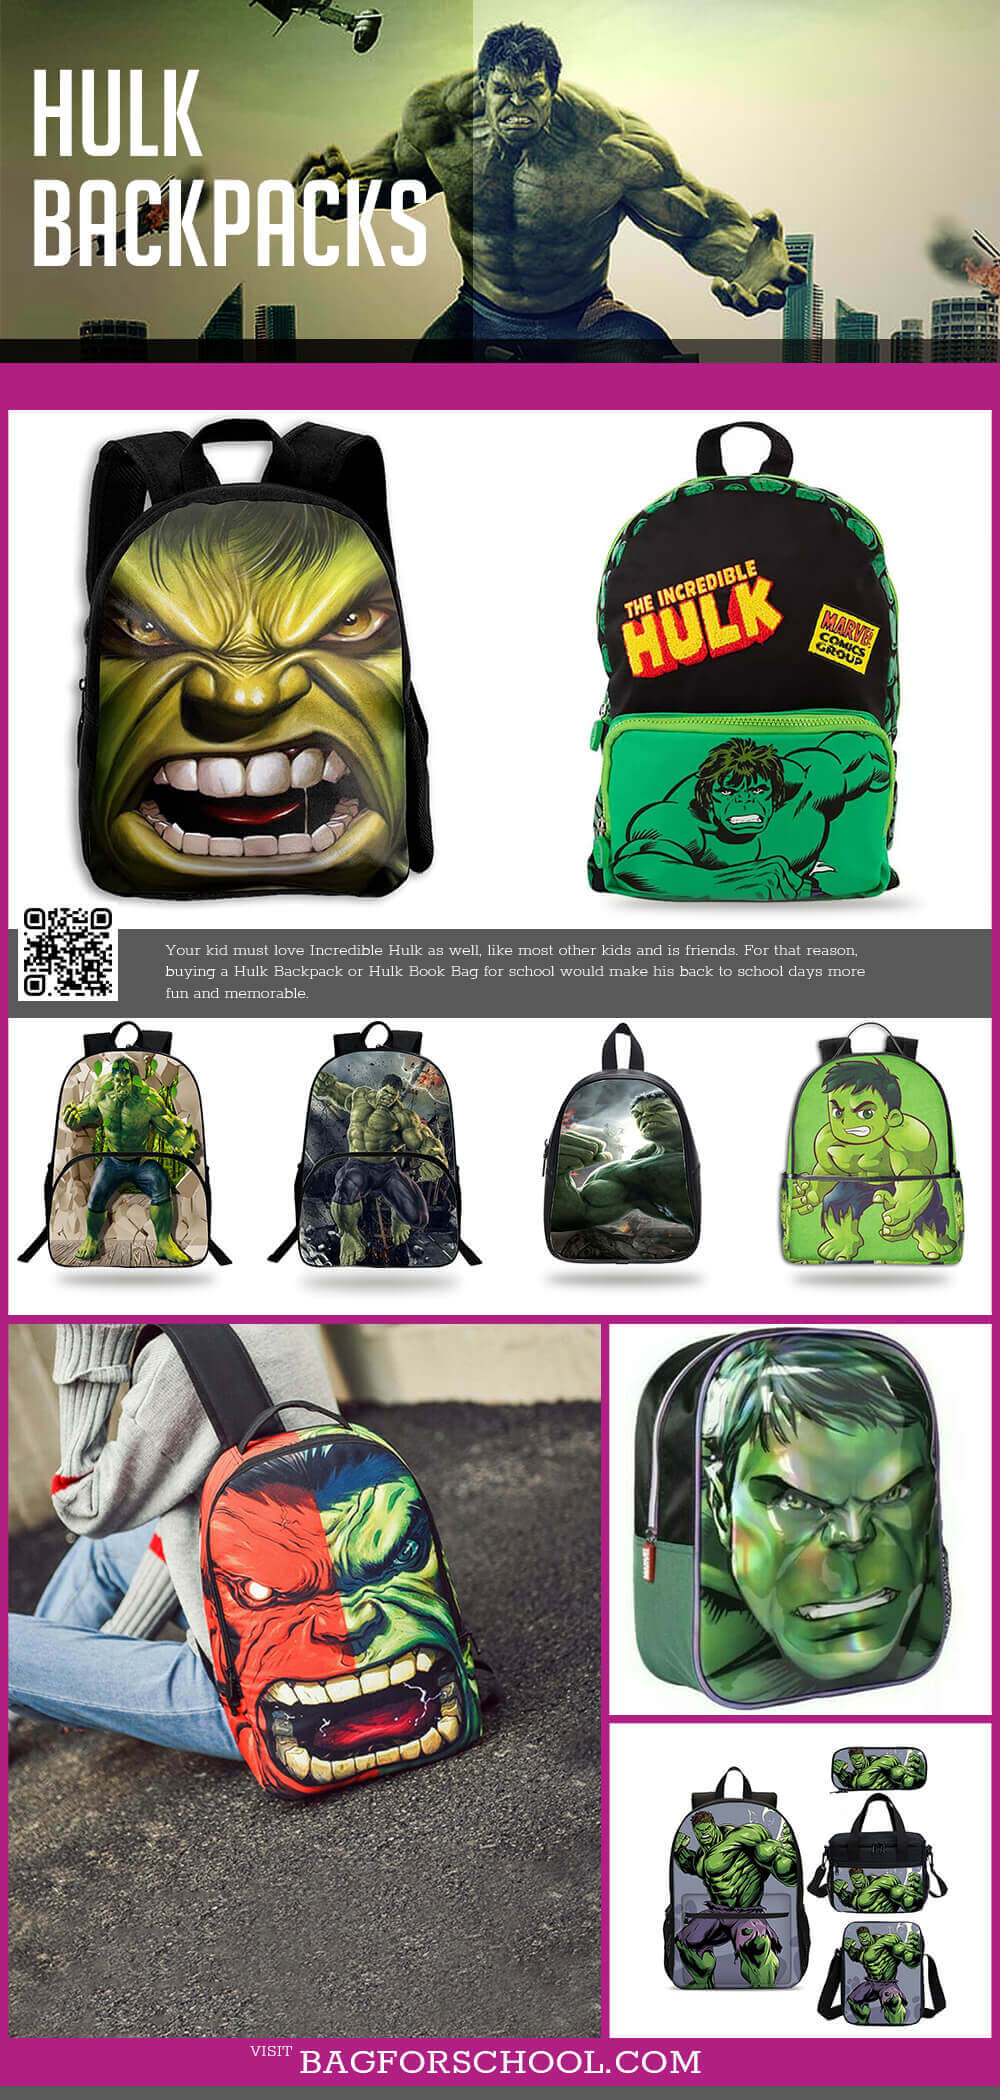 Hulk Backpacks